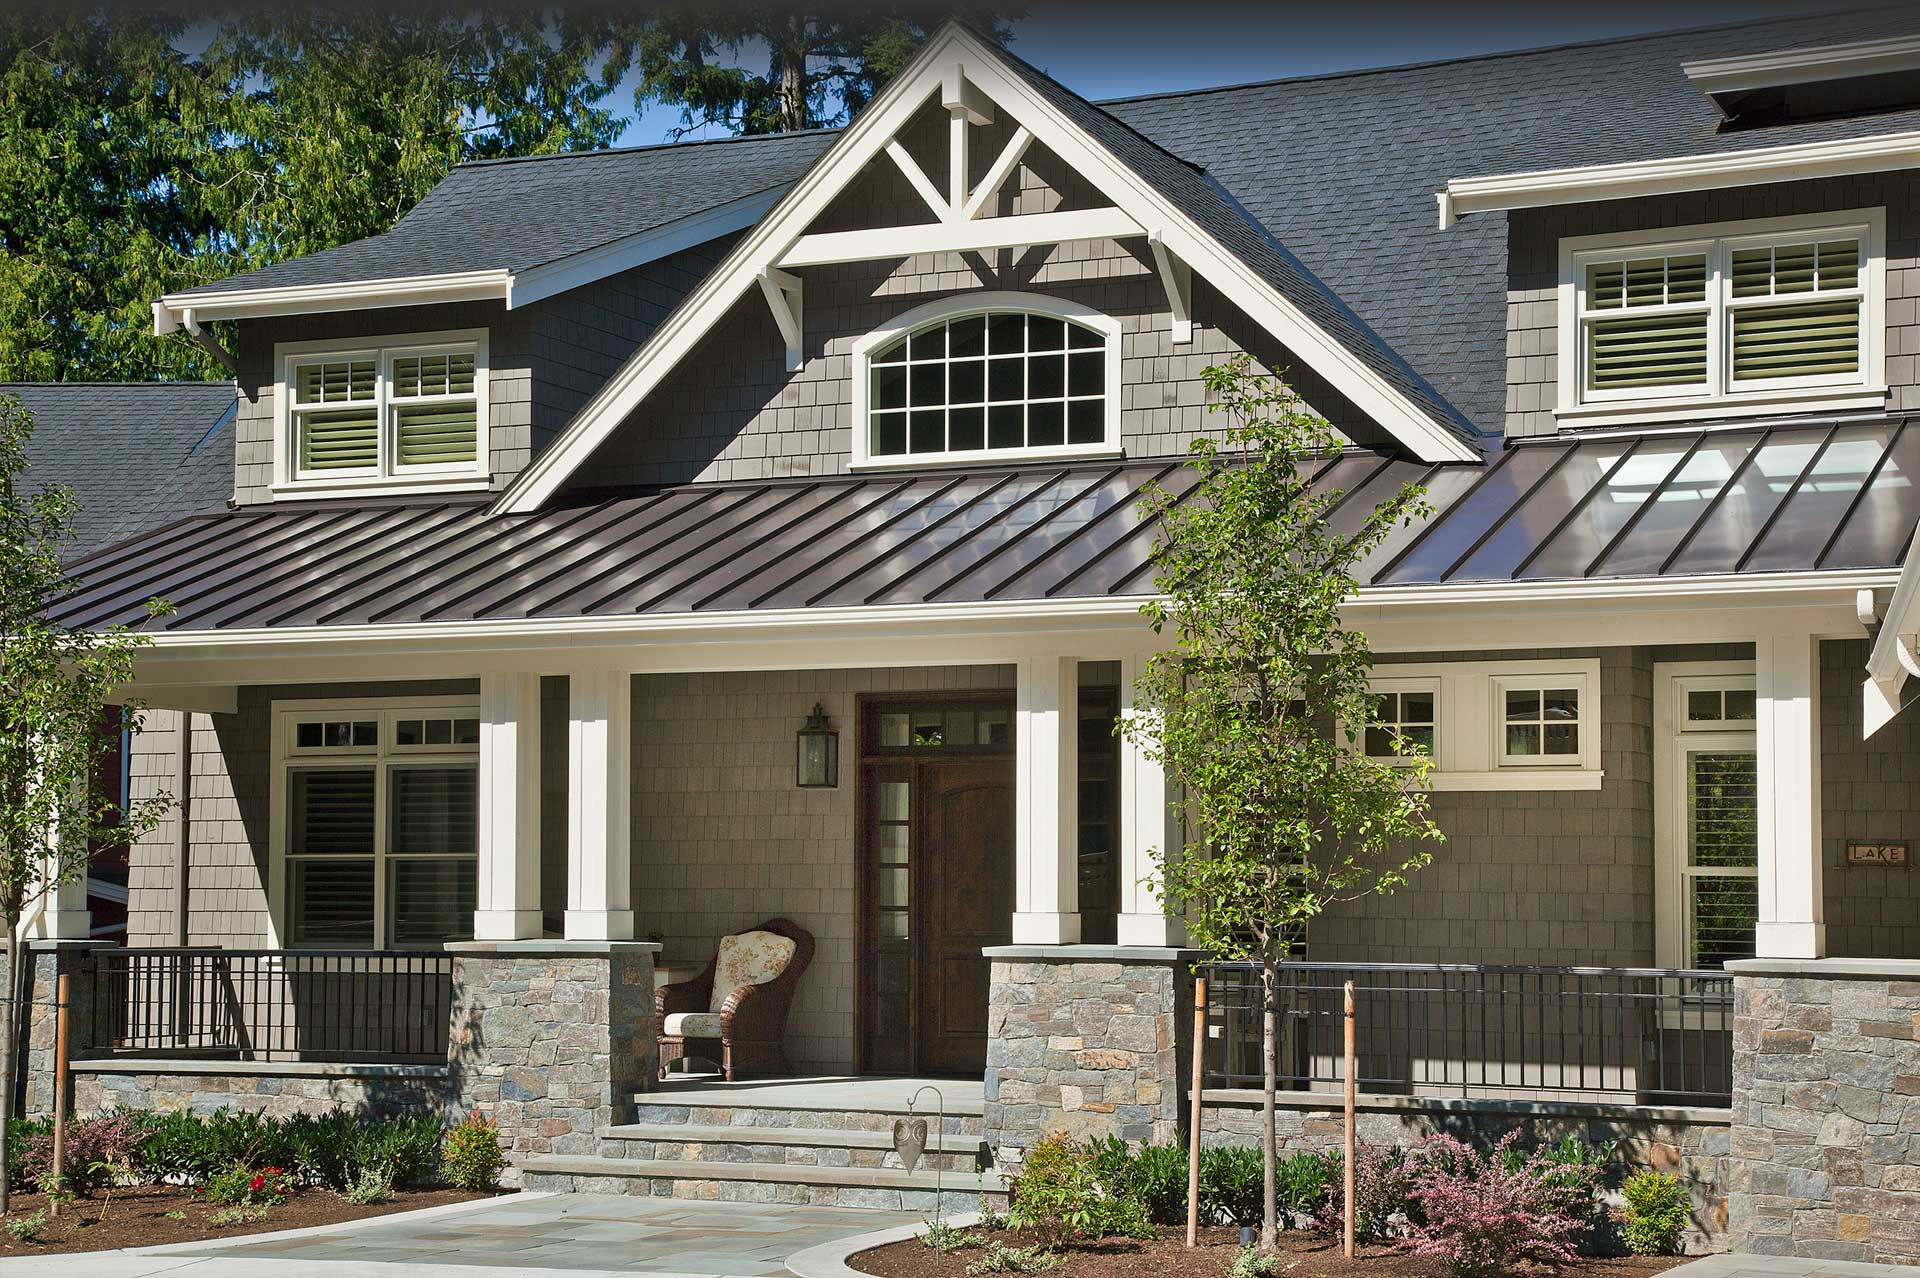 Design Guild Homes Bellevue, Mercer Island, Redmond, Kirkland, Issaquah and Seattle Home Builders & Remodelers Since 1976